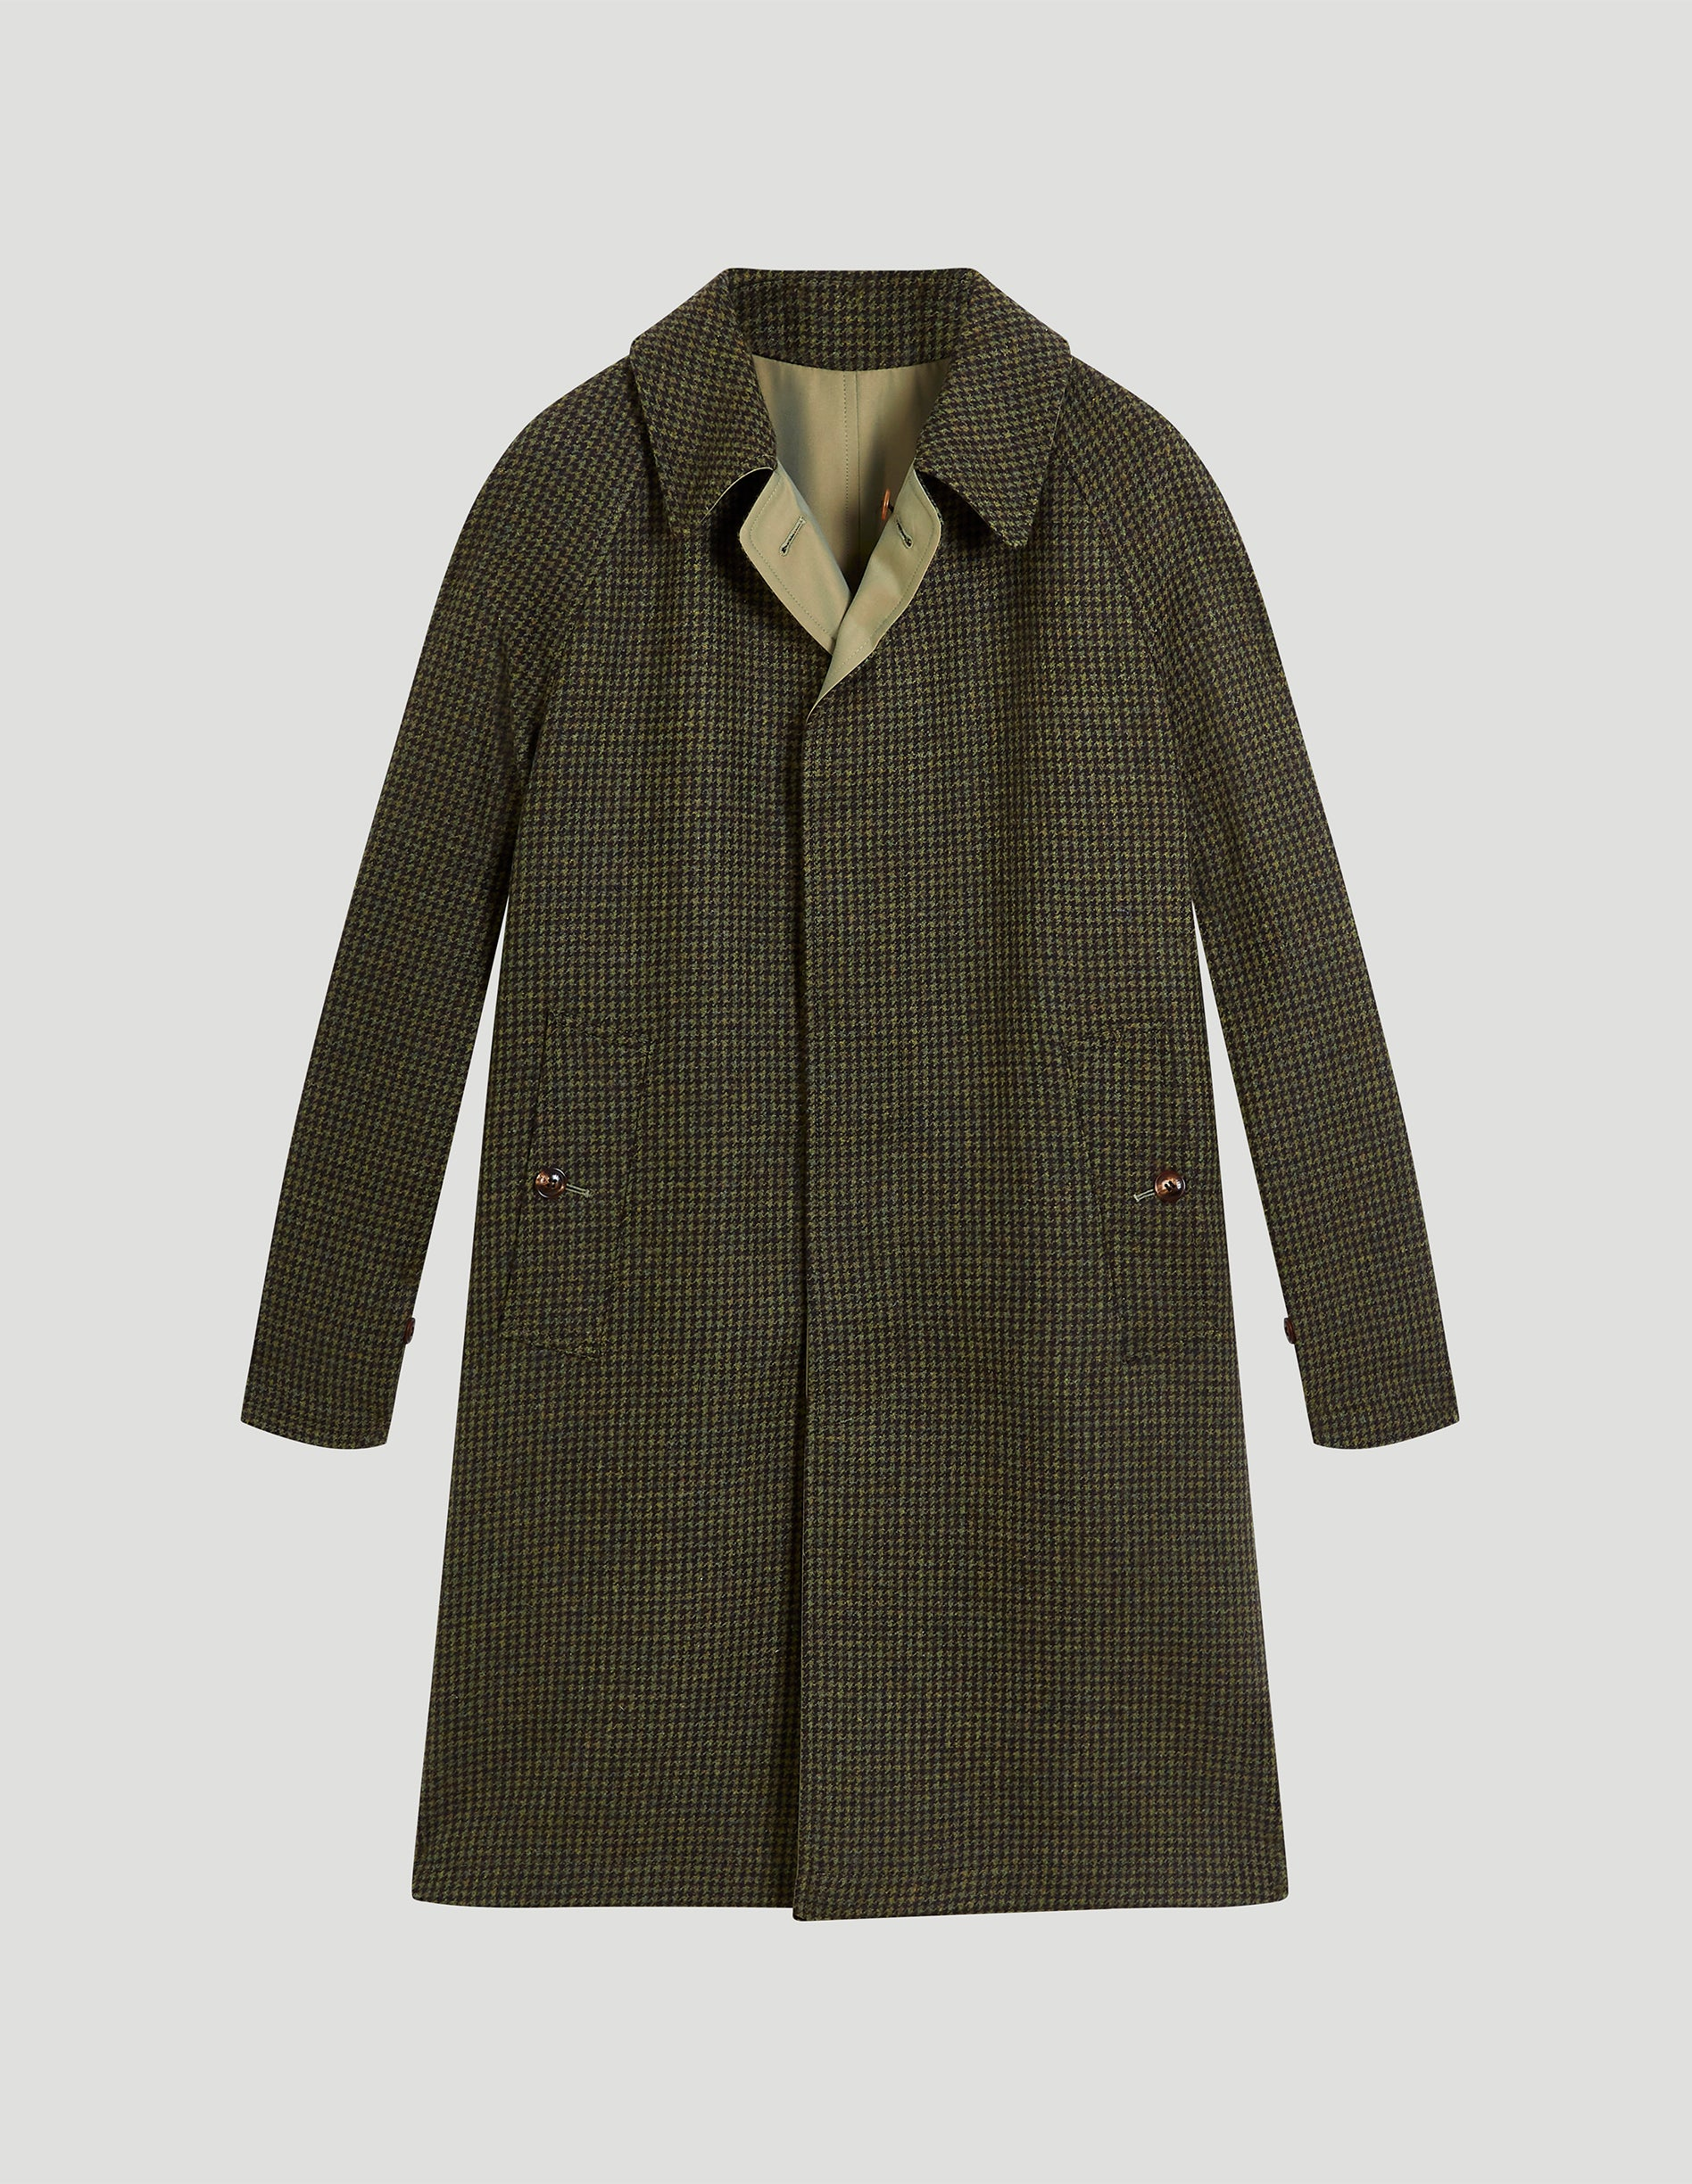 Men's Luxury Coats, Jackets & Parkas with Grenfell